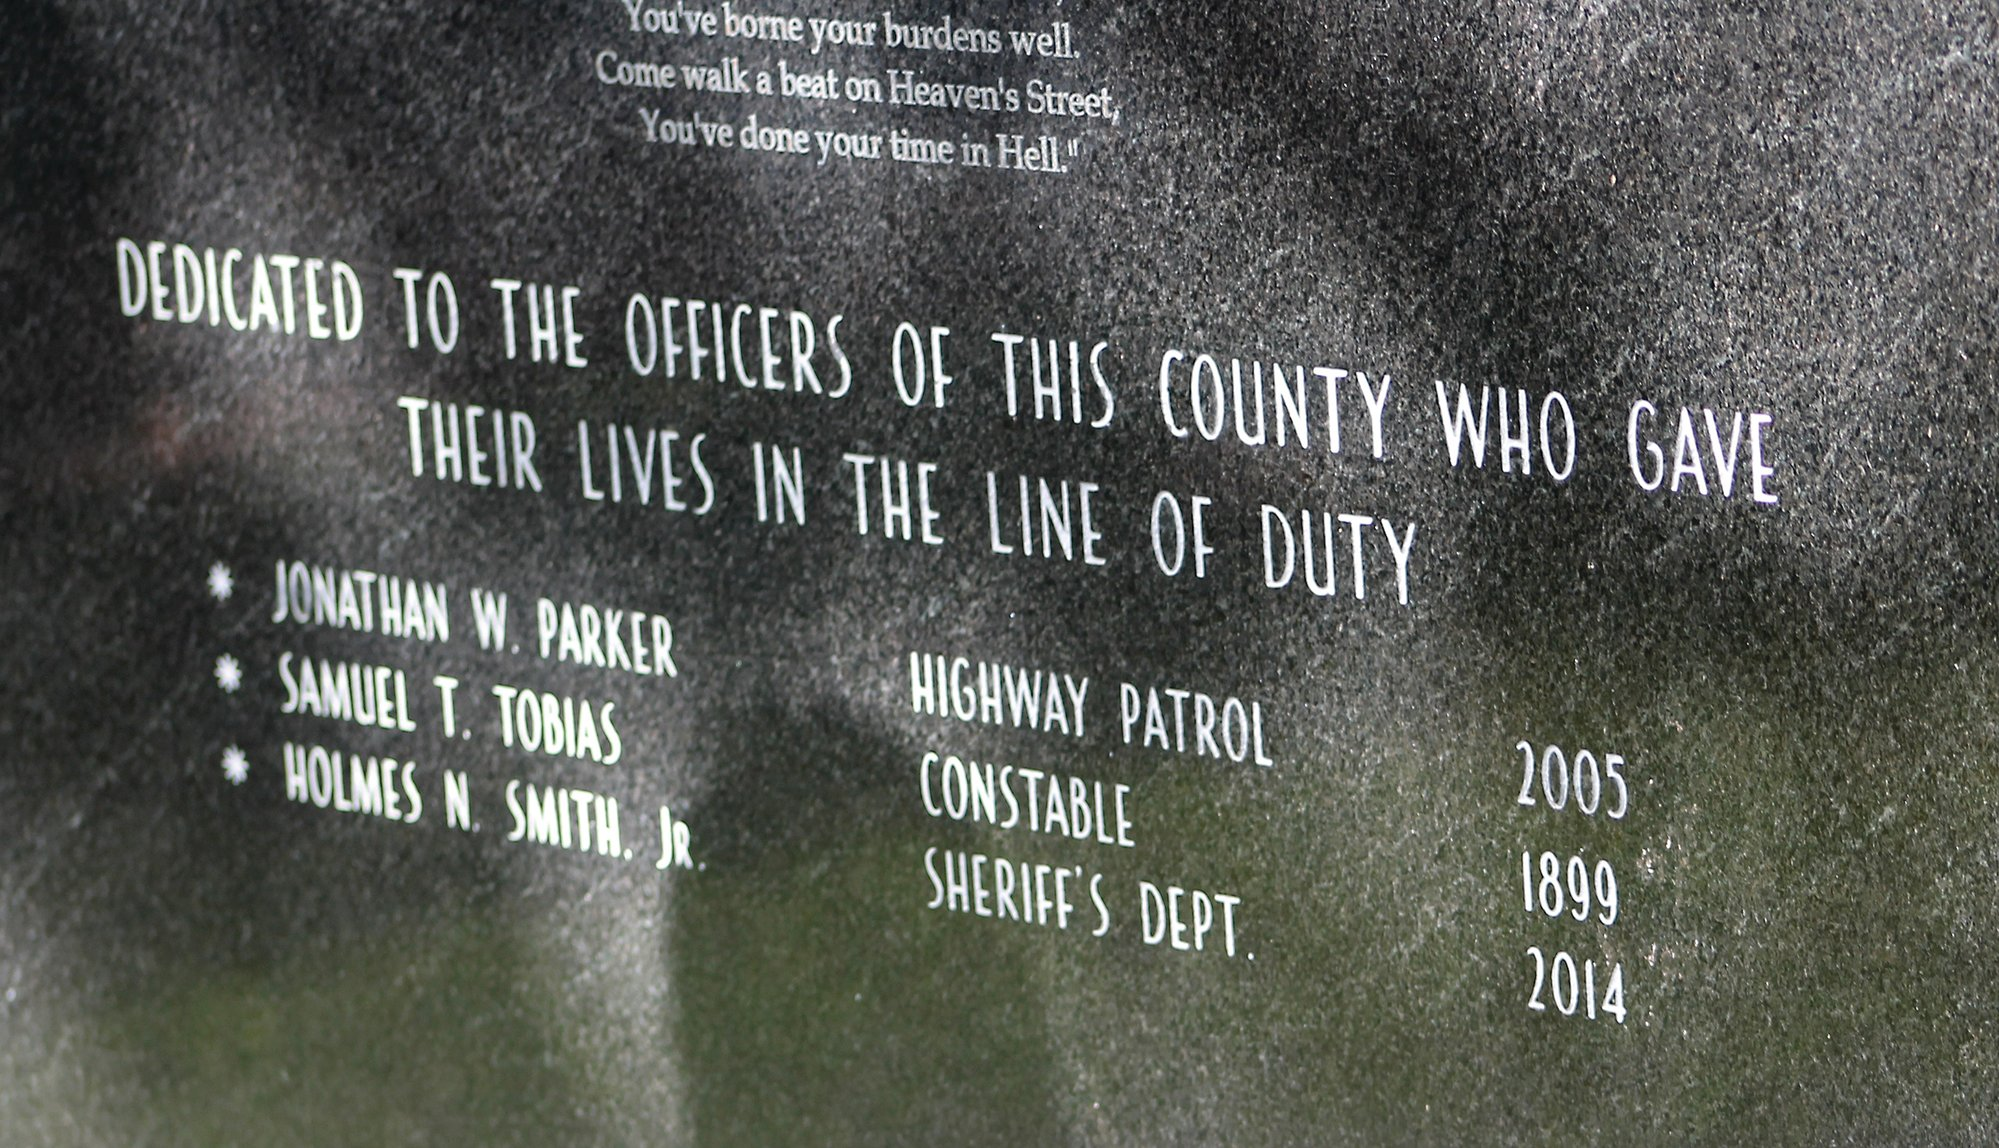 The Clarendon County Law Enforcement Officers' Memorial rests under towering trees on the Mill Street side of the Clarendon County Courthouse.  Names of Clarendon County law enforcement officers who died in the line of duty are engraved on both sides of the monument. On the courthouse side of the monument, the name of the first documented death in Clarendon County is engraved above the most recent death.  Constable Samuel T. Tobias died in 1899. Clarendon County Sheriff's Office Investigator Holmes N. Smith Jr. died in 2014.